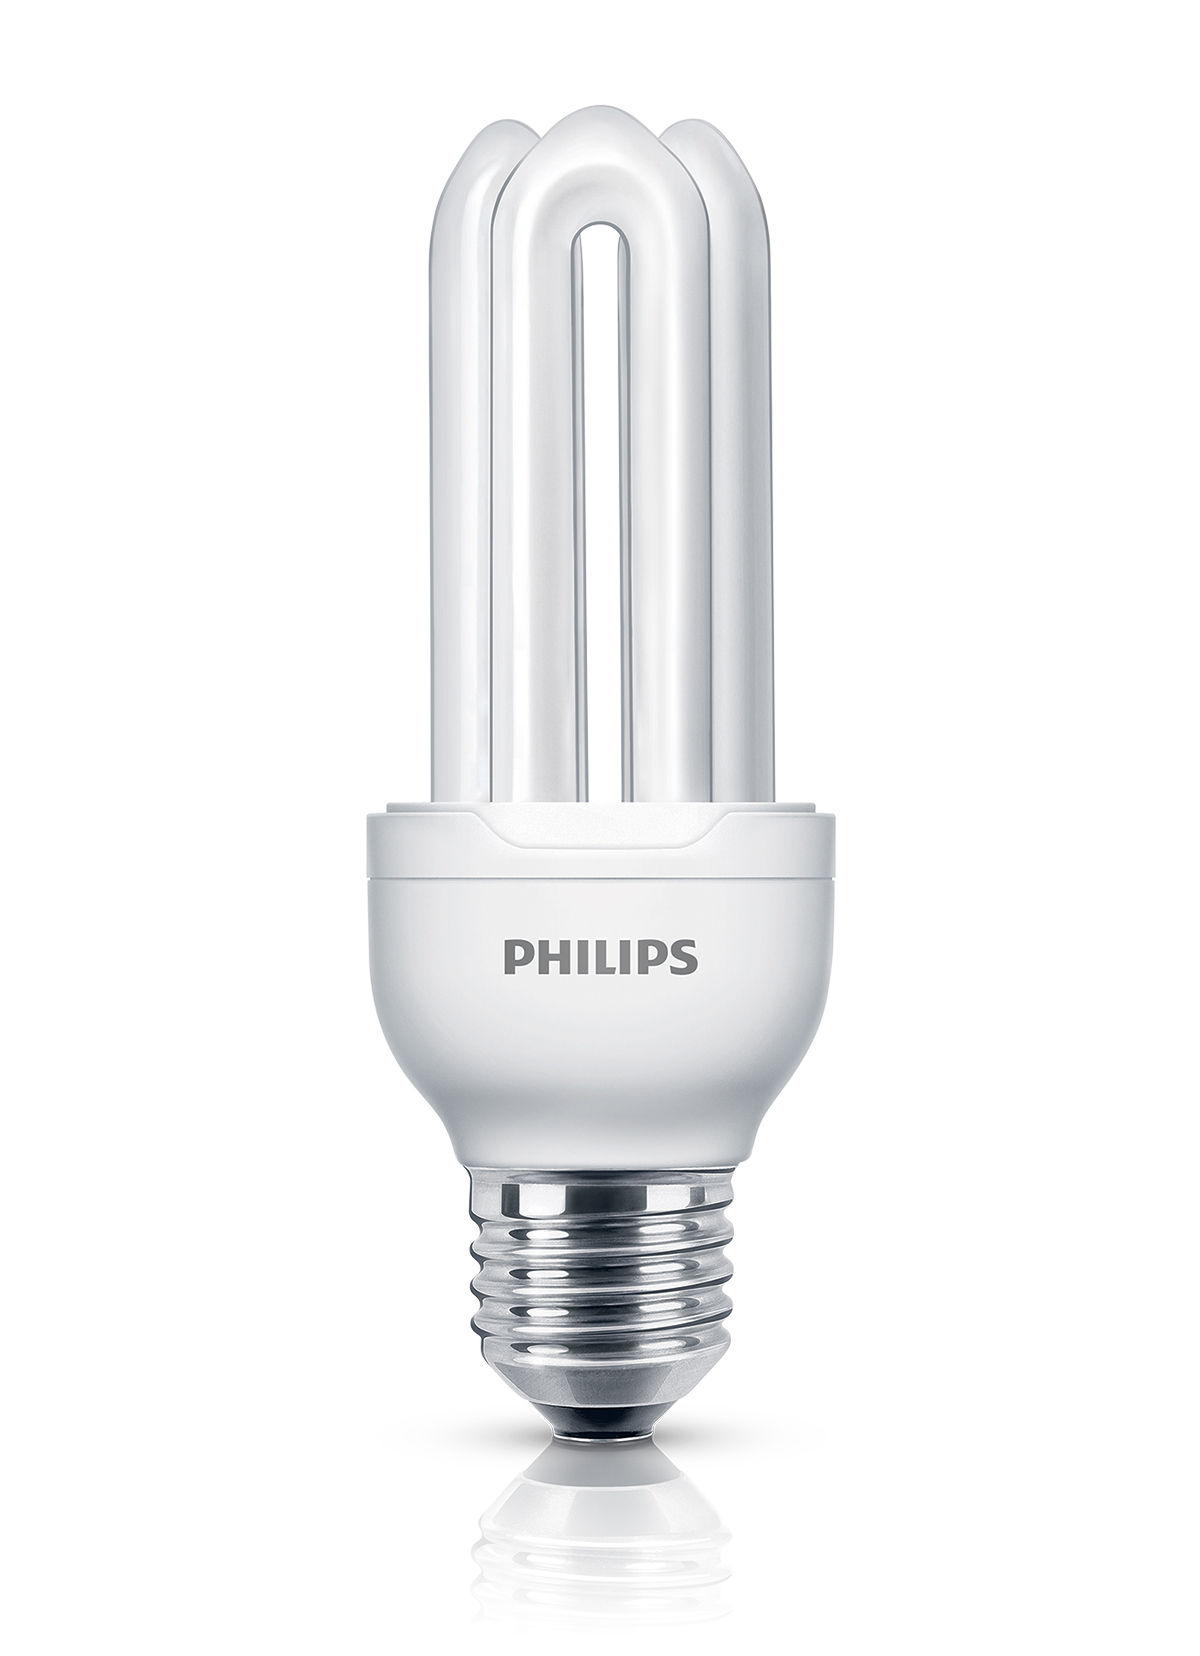 genie fluocompact bulb e27 11w 50w 580 lumen 11w 50w by philips. Black Bedroom Furniture Sets. Home Design Ideas